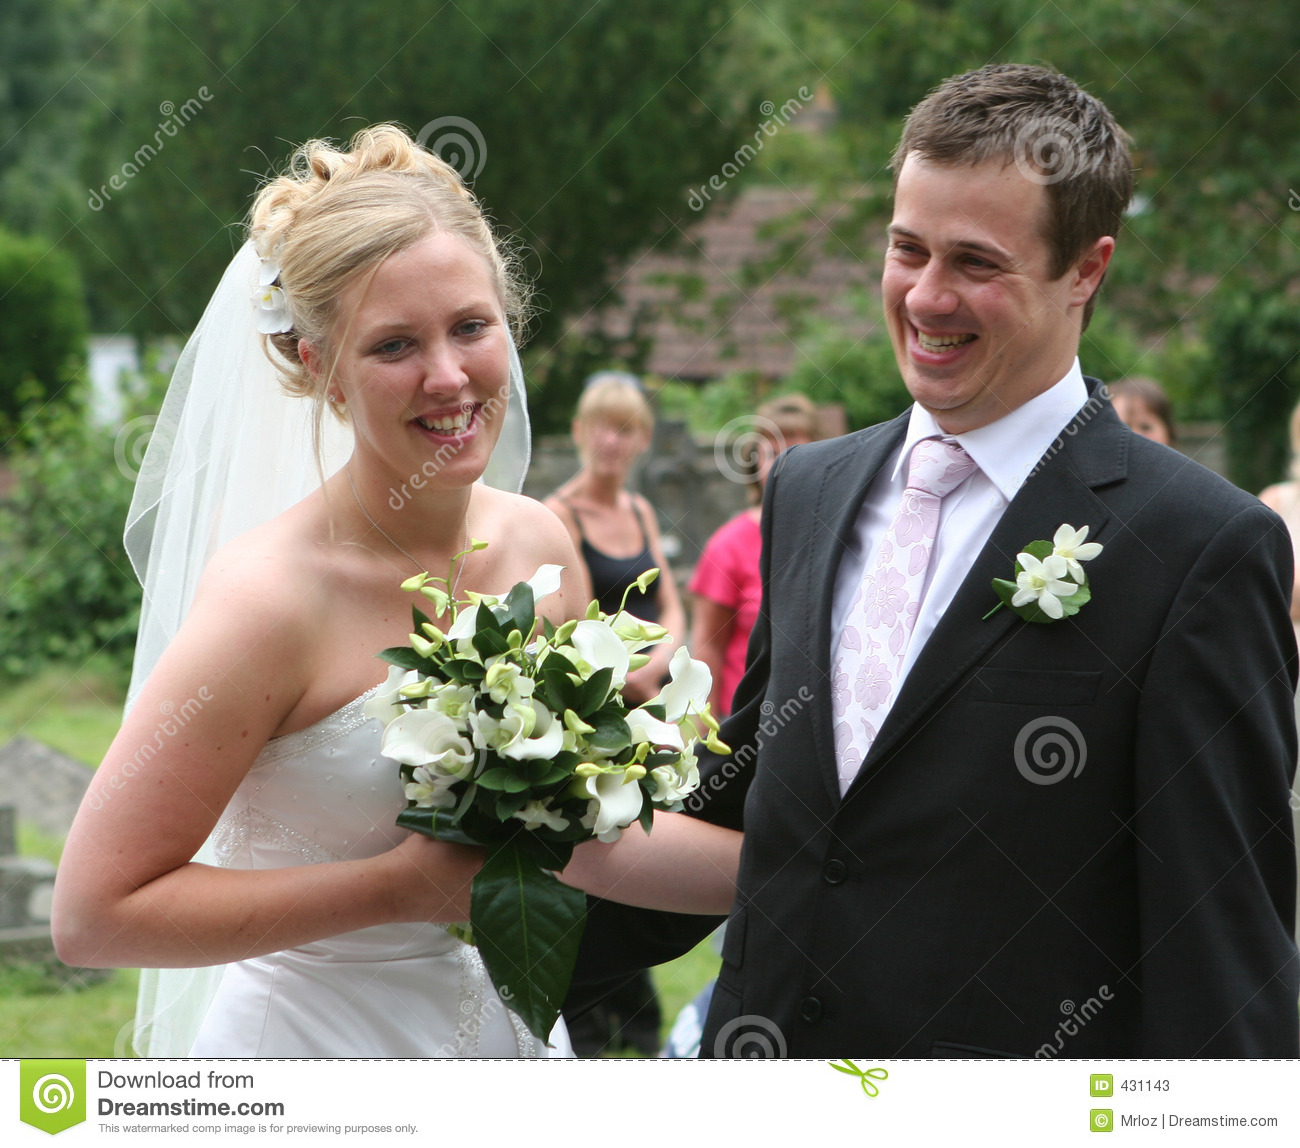 The Bride and Groom 2